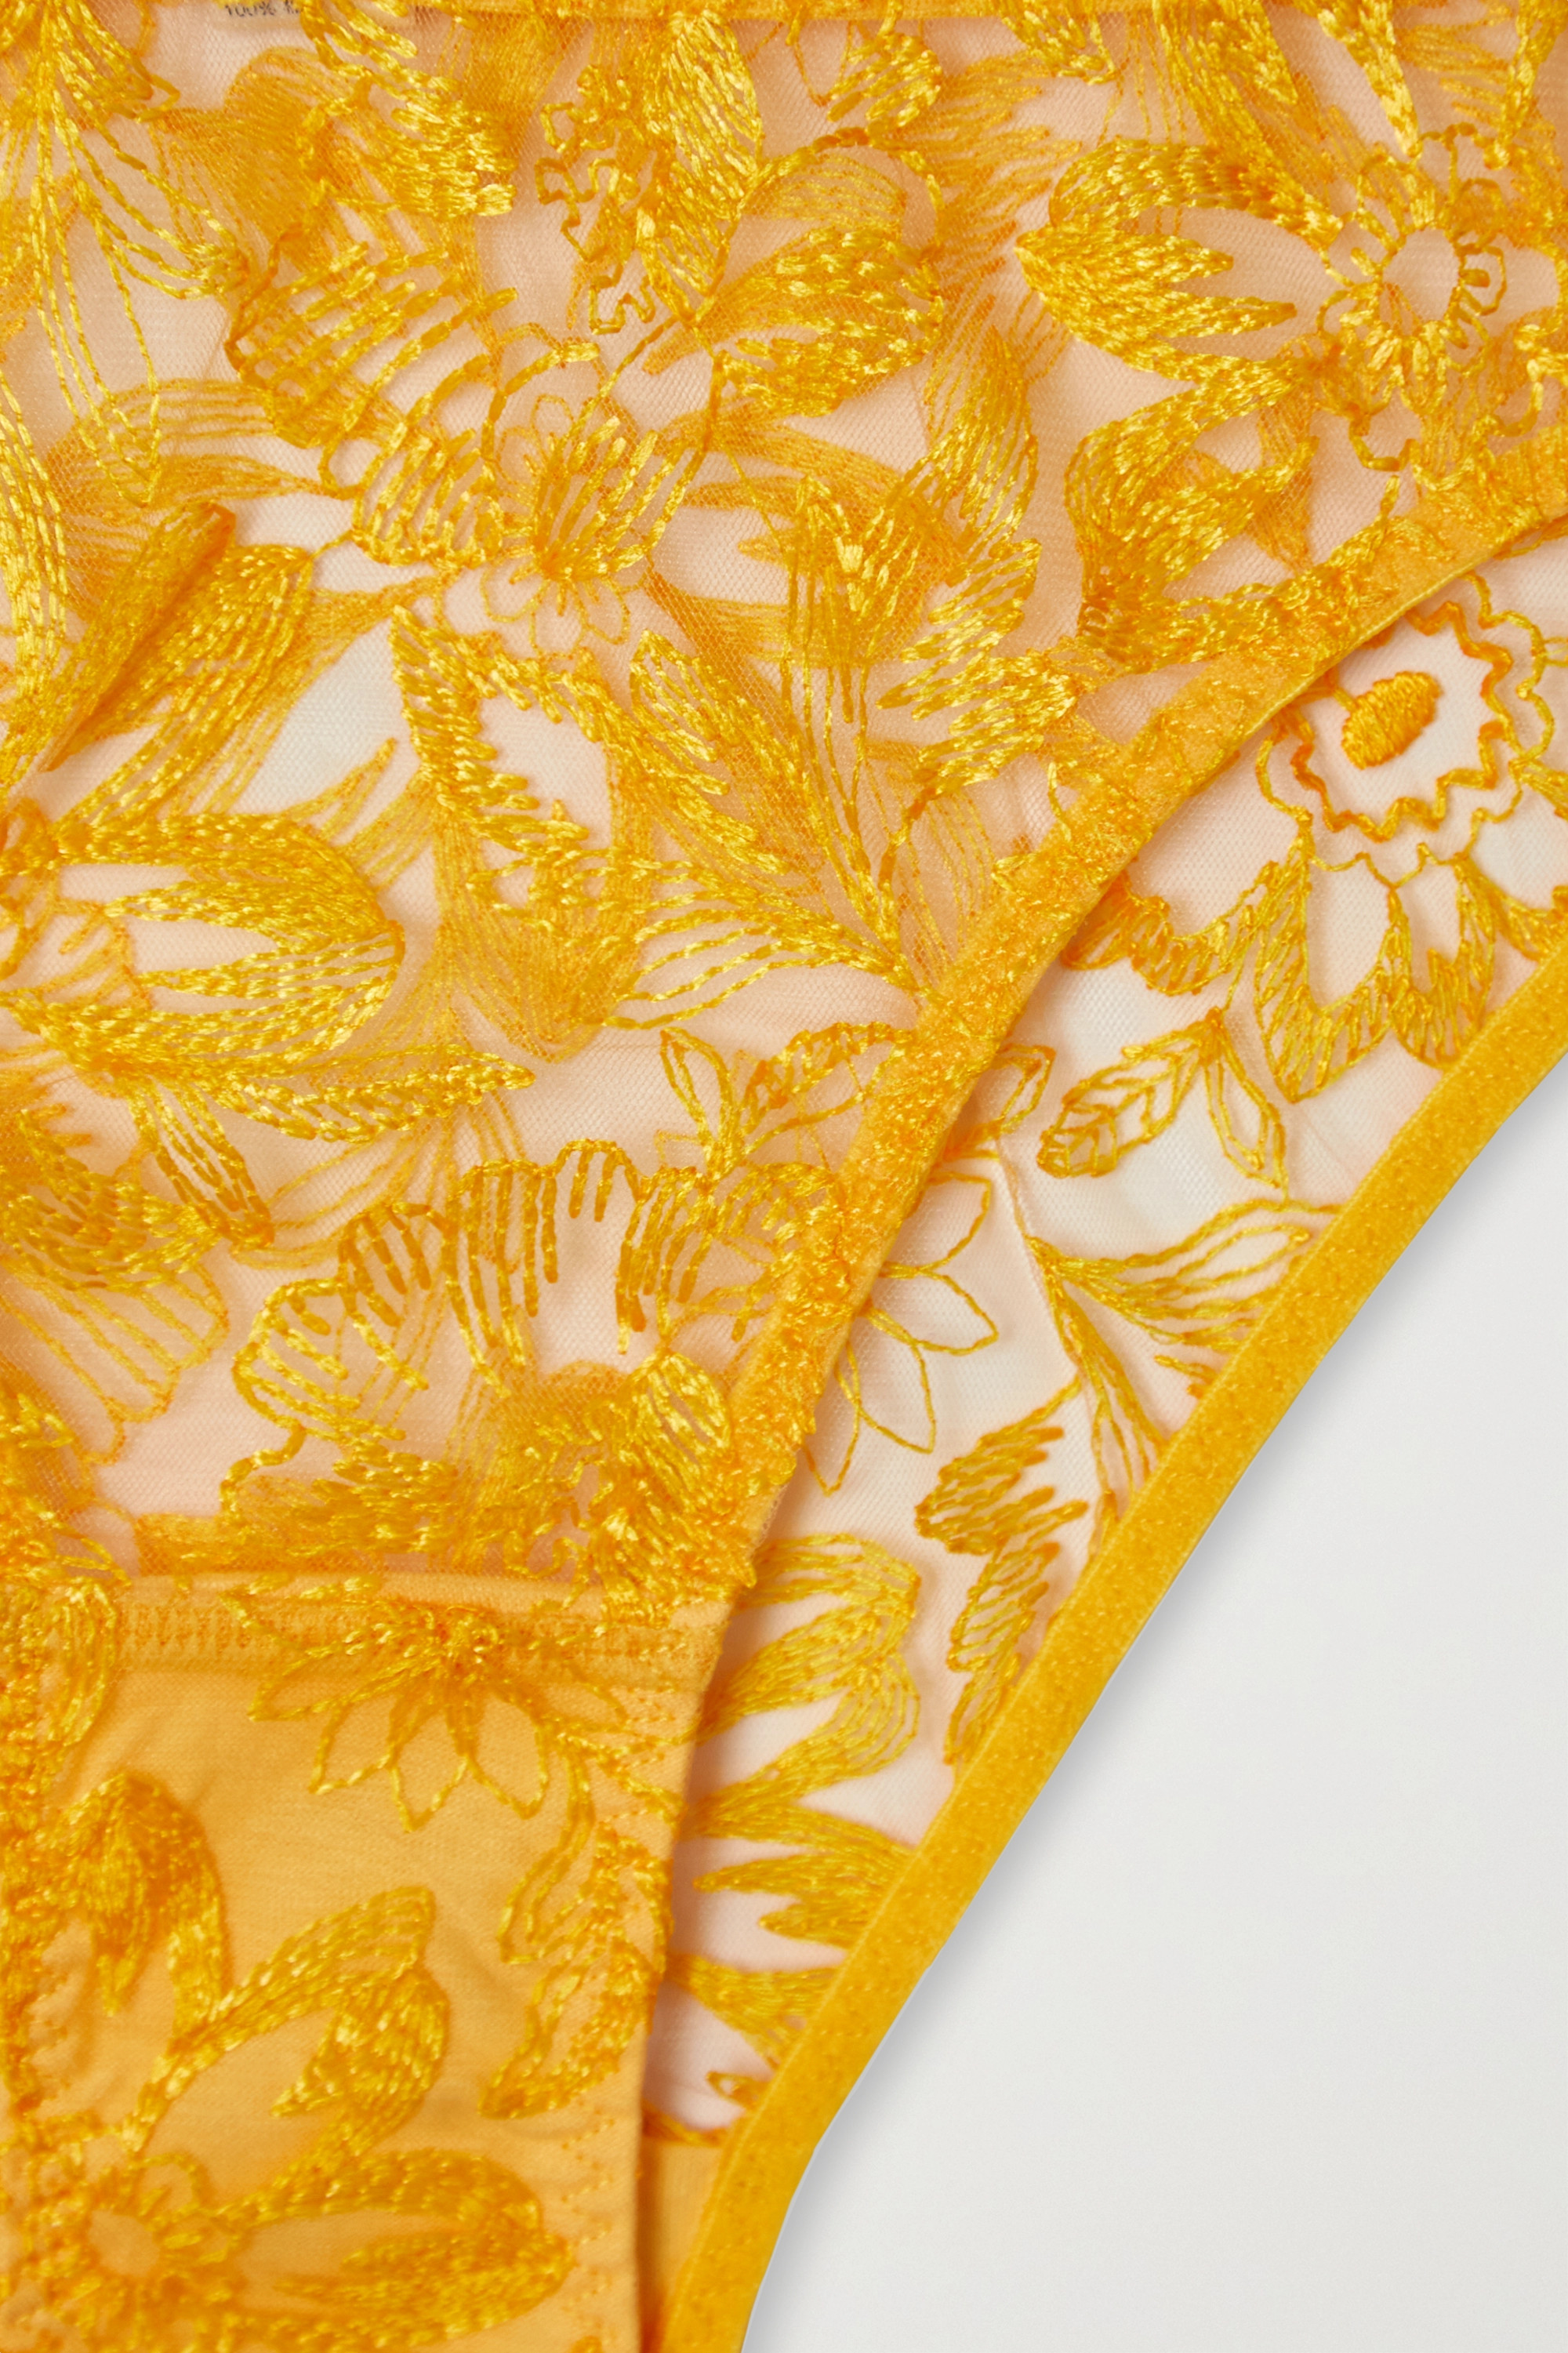 Yellow Columbia Road Embroidered Tulle Briefs   Myla